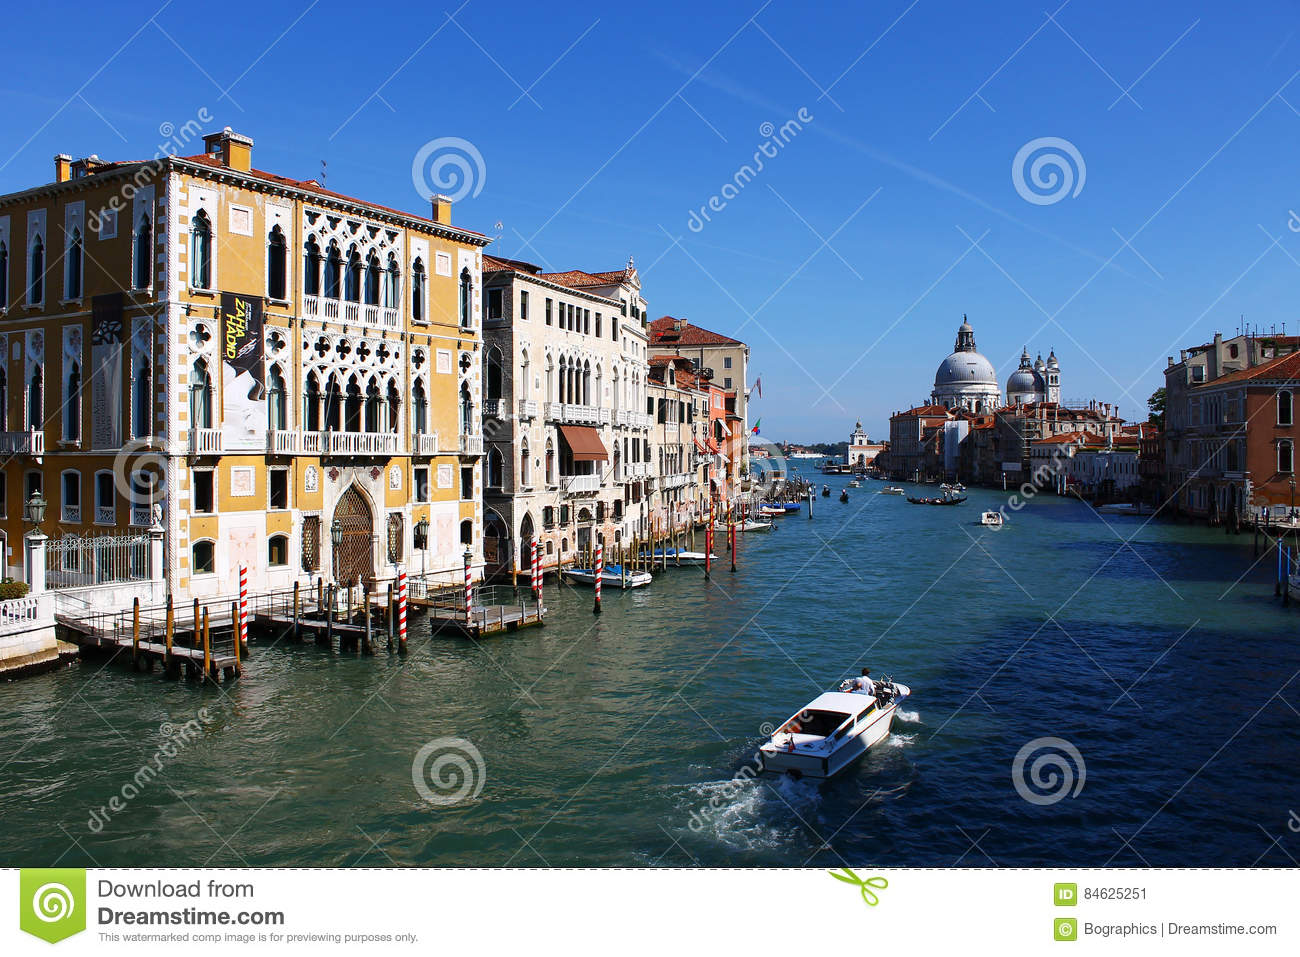 Grand Canal with authentic Venetian buildings and docks